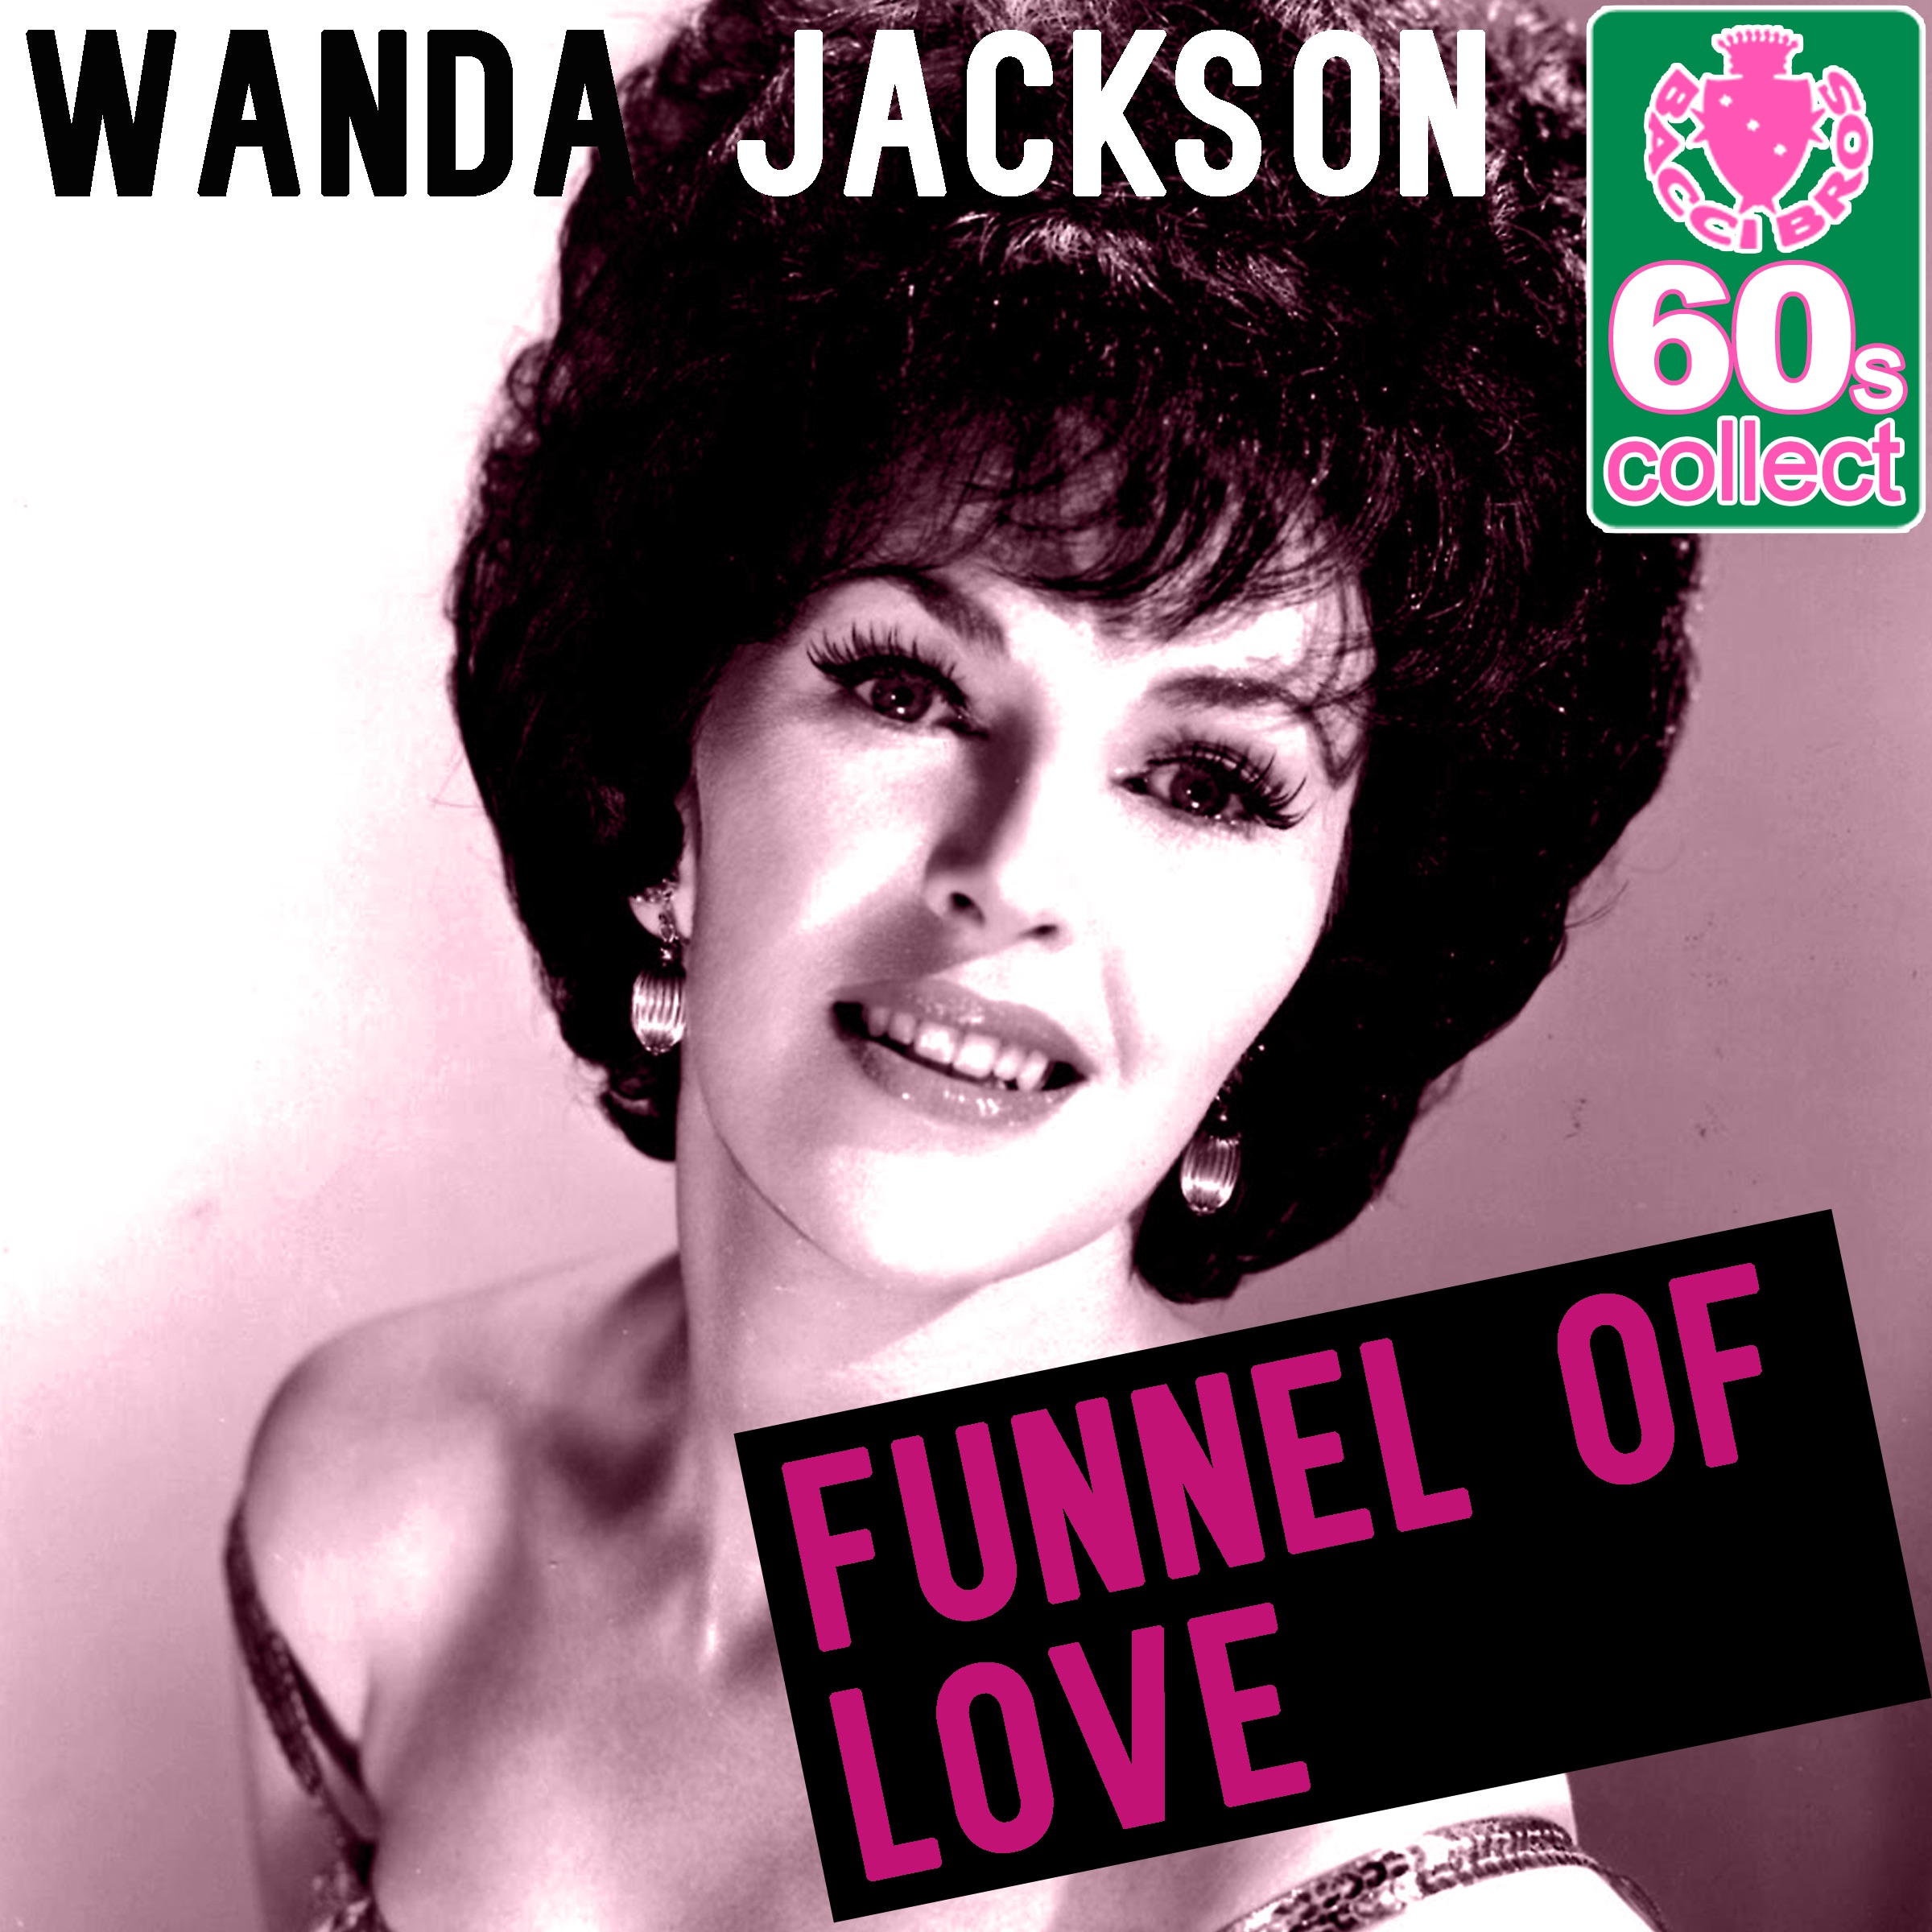 Funnel of Love (Remastered) - Single